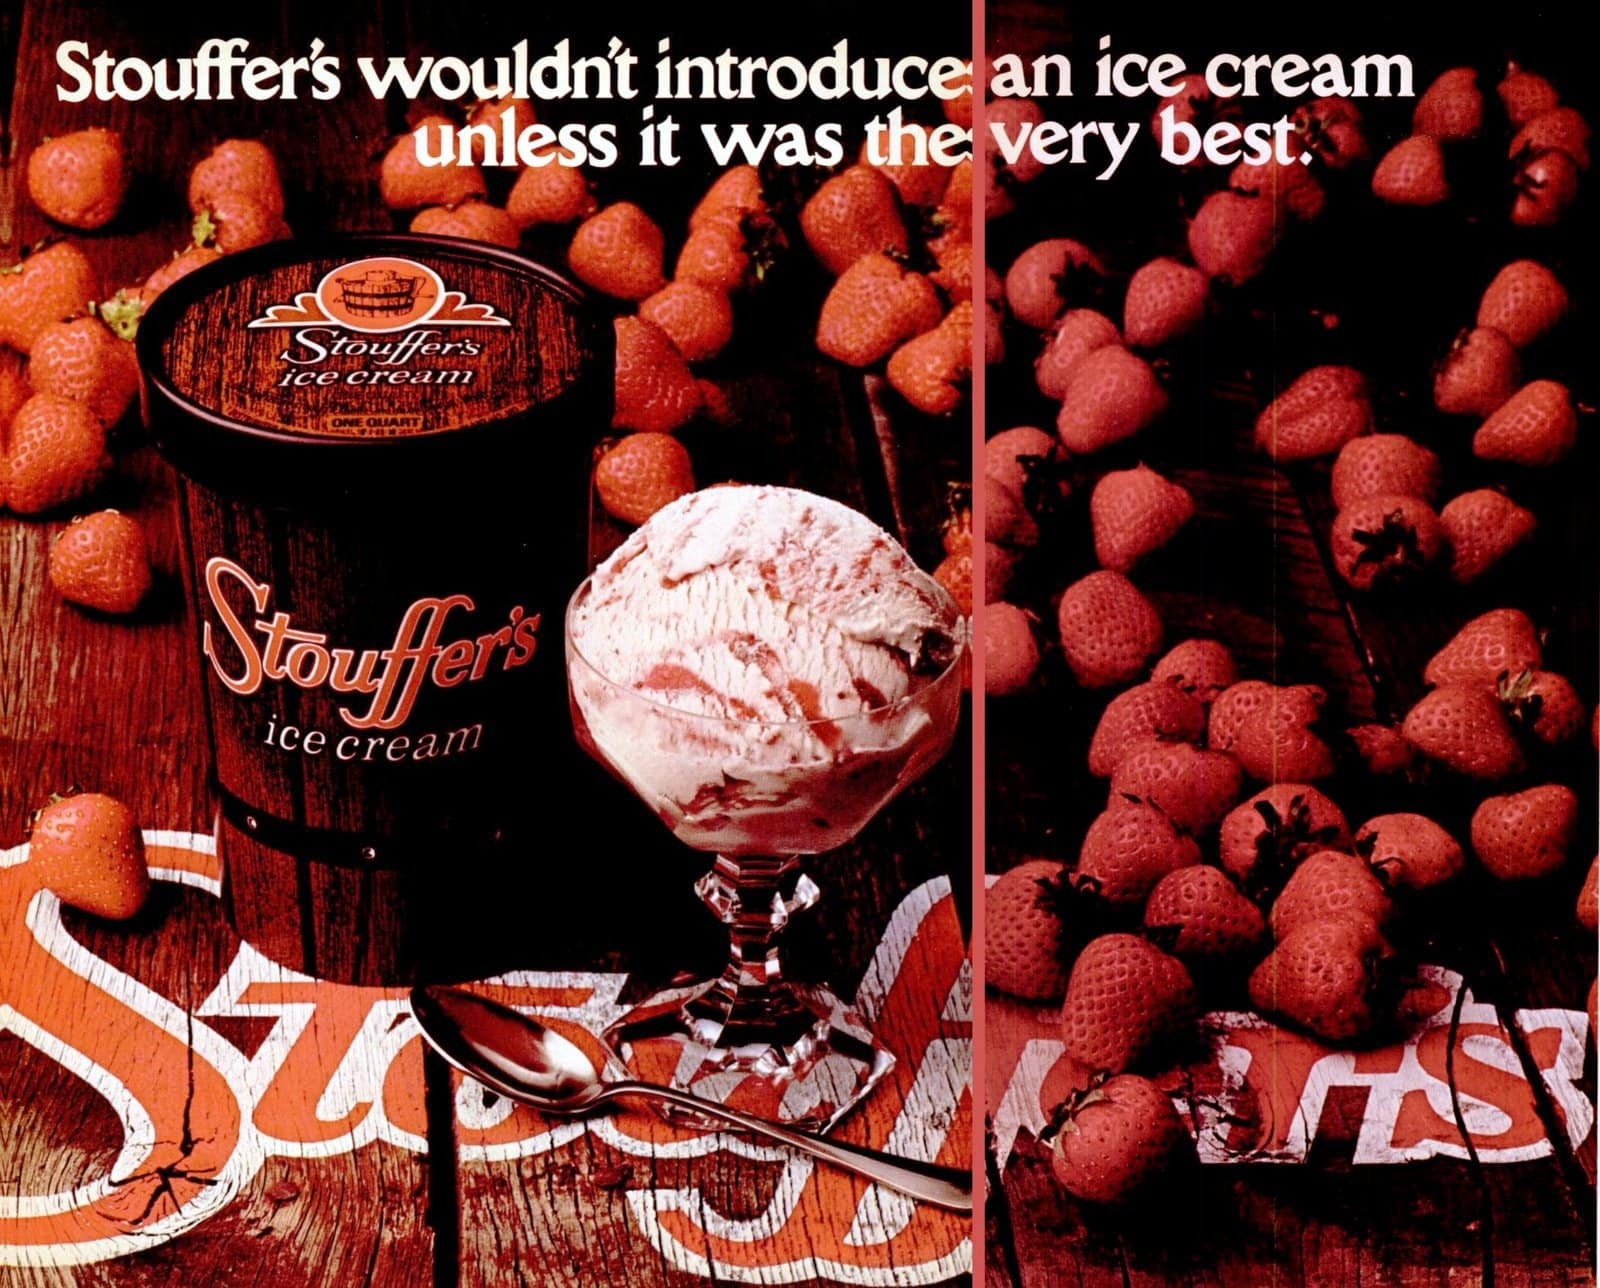 Do you remember Stouffer's ice cream